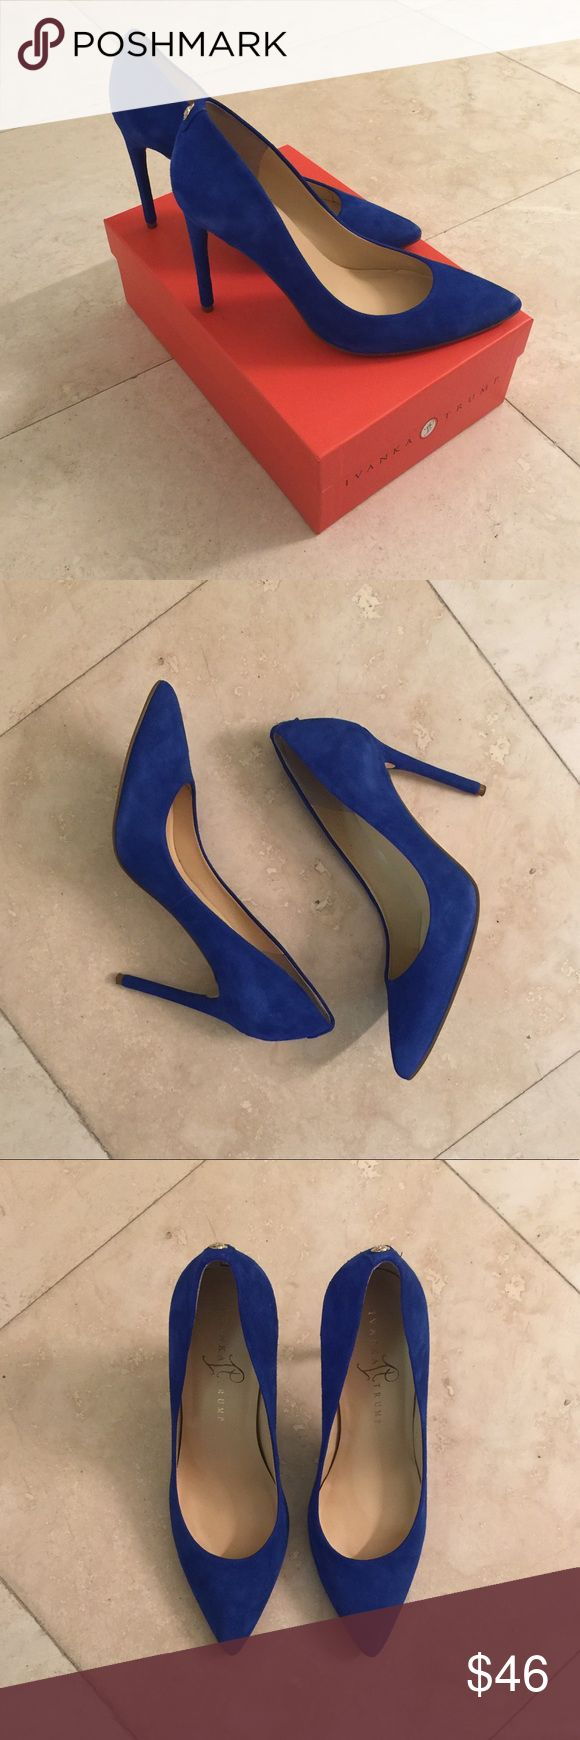 """Blue Suede Pumps by Ivanka Trump Blue suede pumps by Ivanka Trump in almost new condition. Insoles and fabric are pristine; soles show a little wear.   Heels measure approximately 4.25"""" in height. Pumps come with the original box.  Thanks for browsing my closet! Ivanka Trump Shoes Heels"""